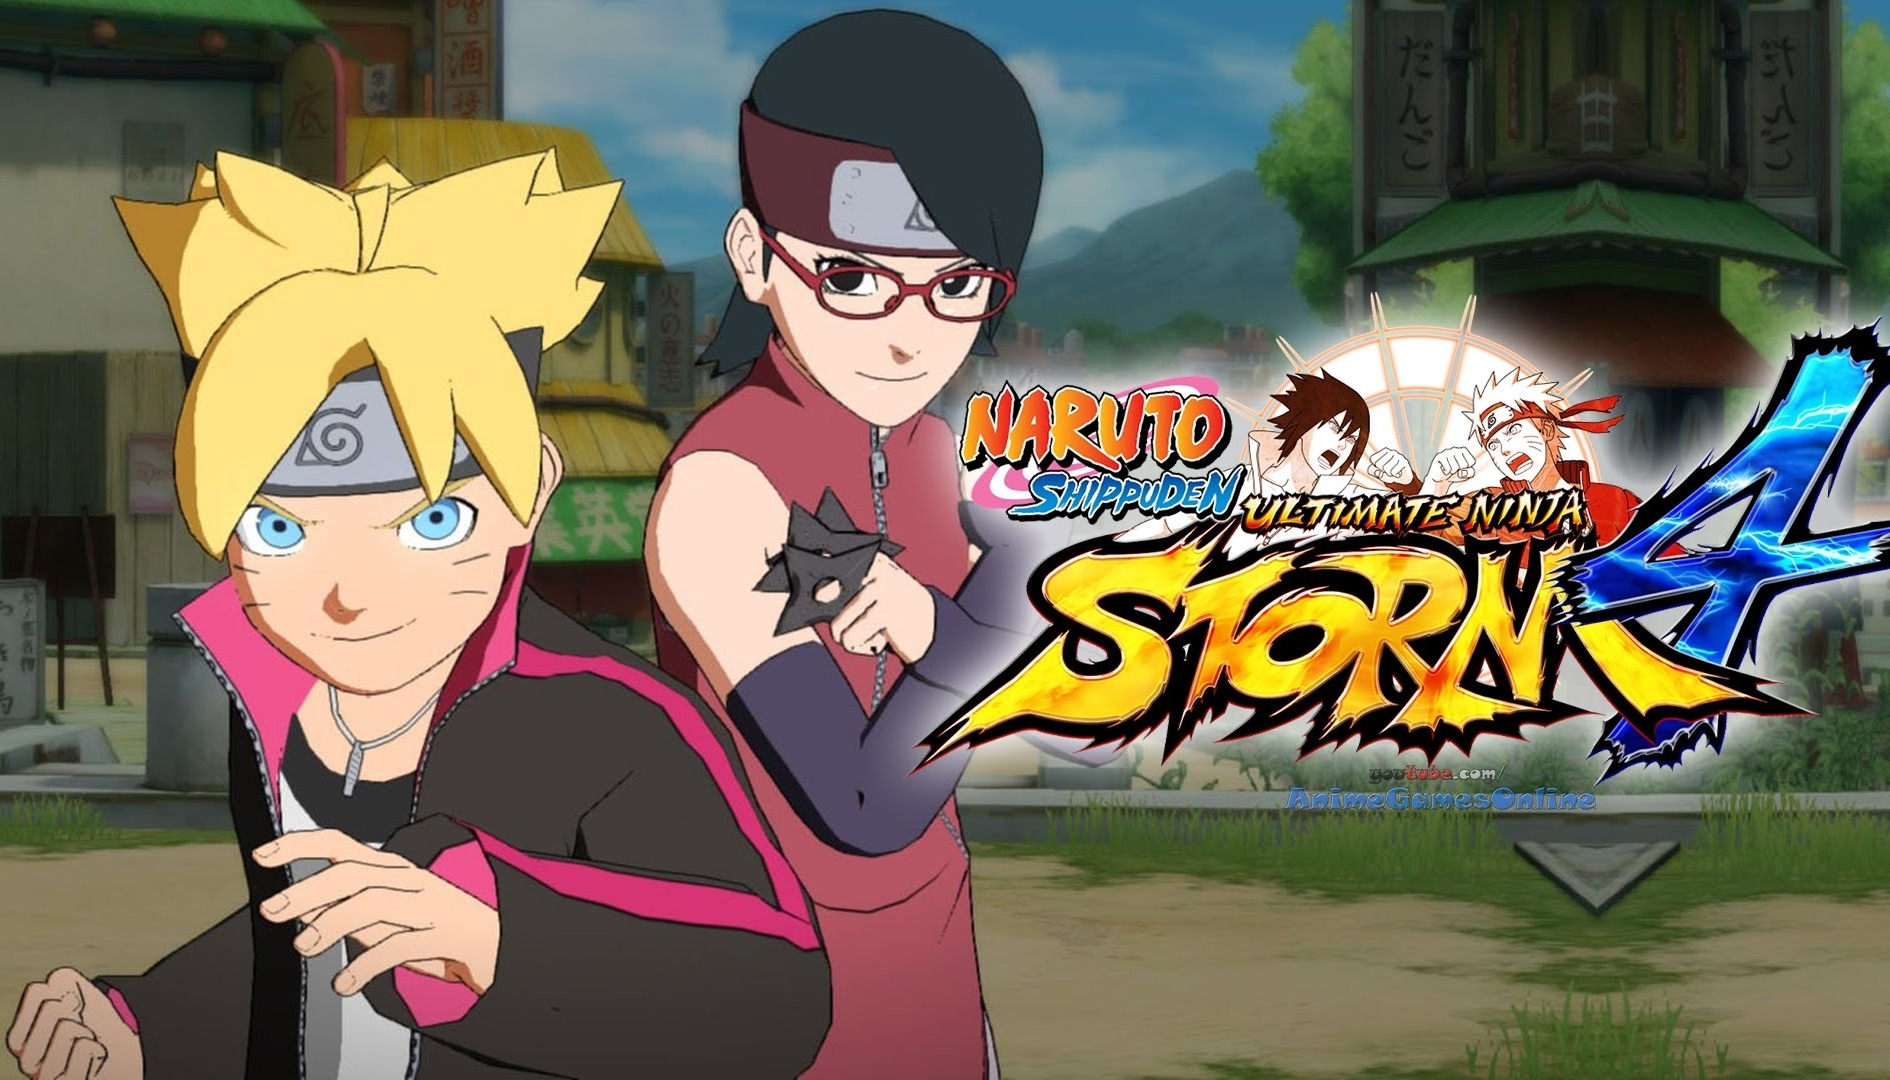 Naruto Shippuden Ultimate Ninja Storm 4 Road to Boruto: trailer e data per la versione Switch